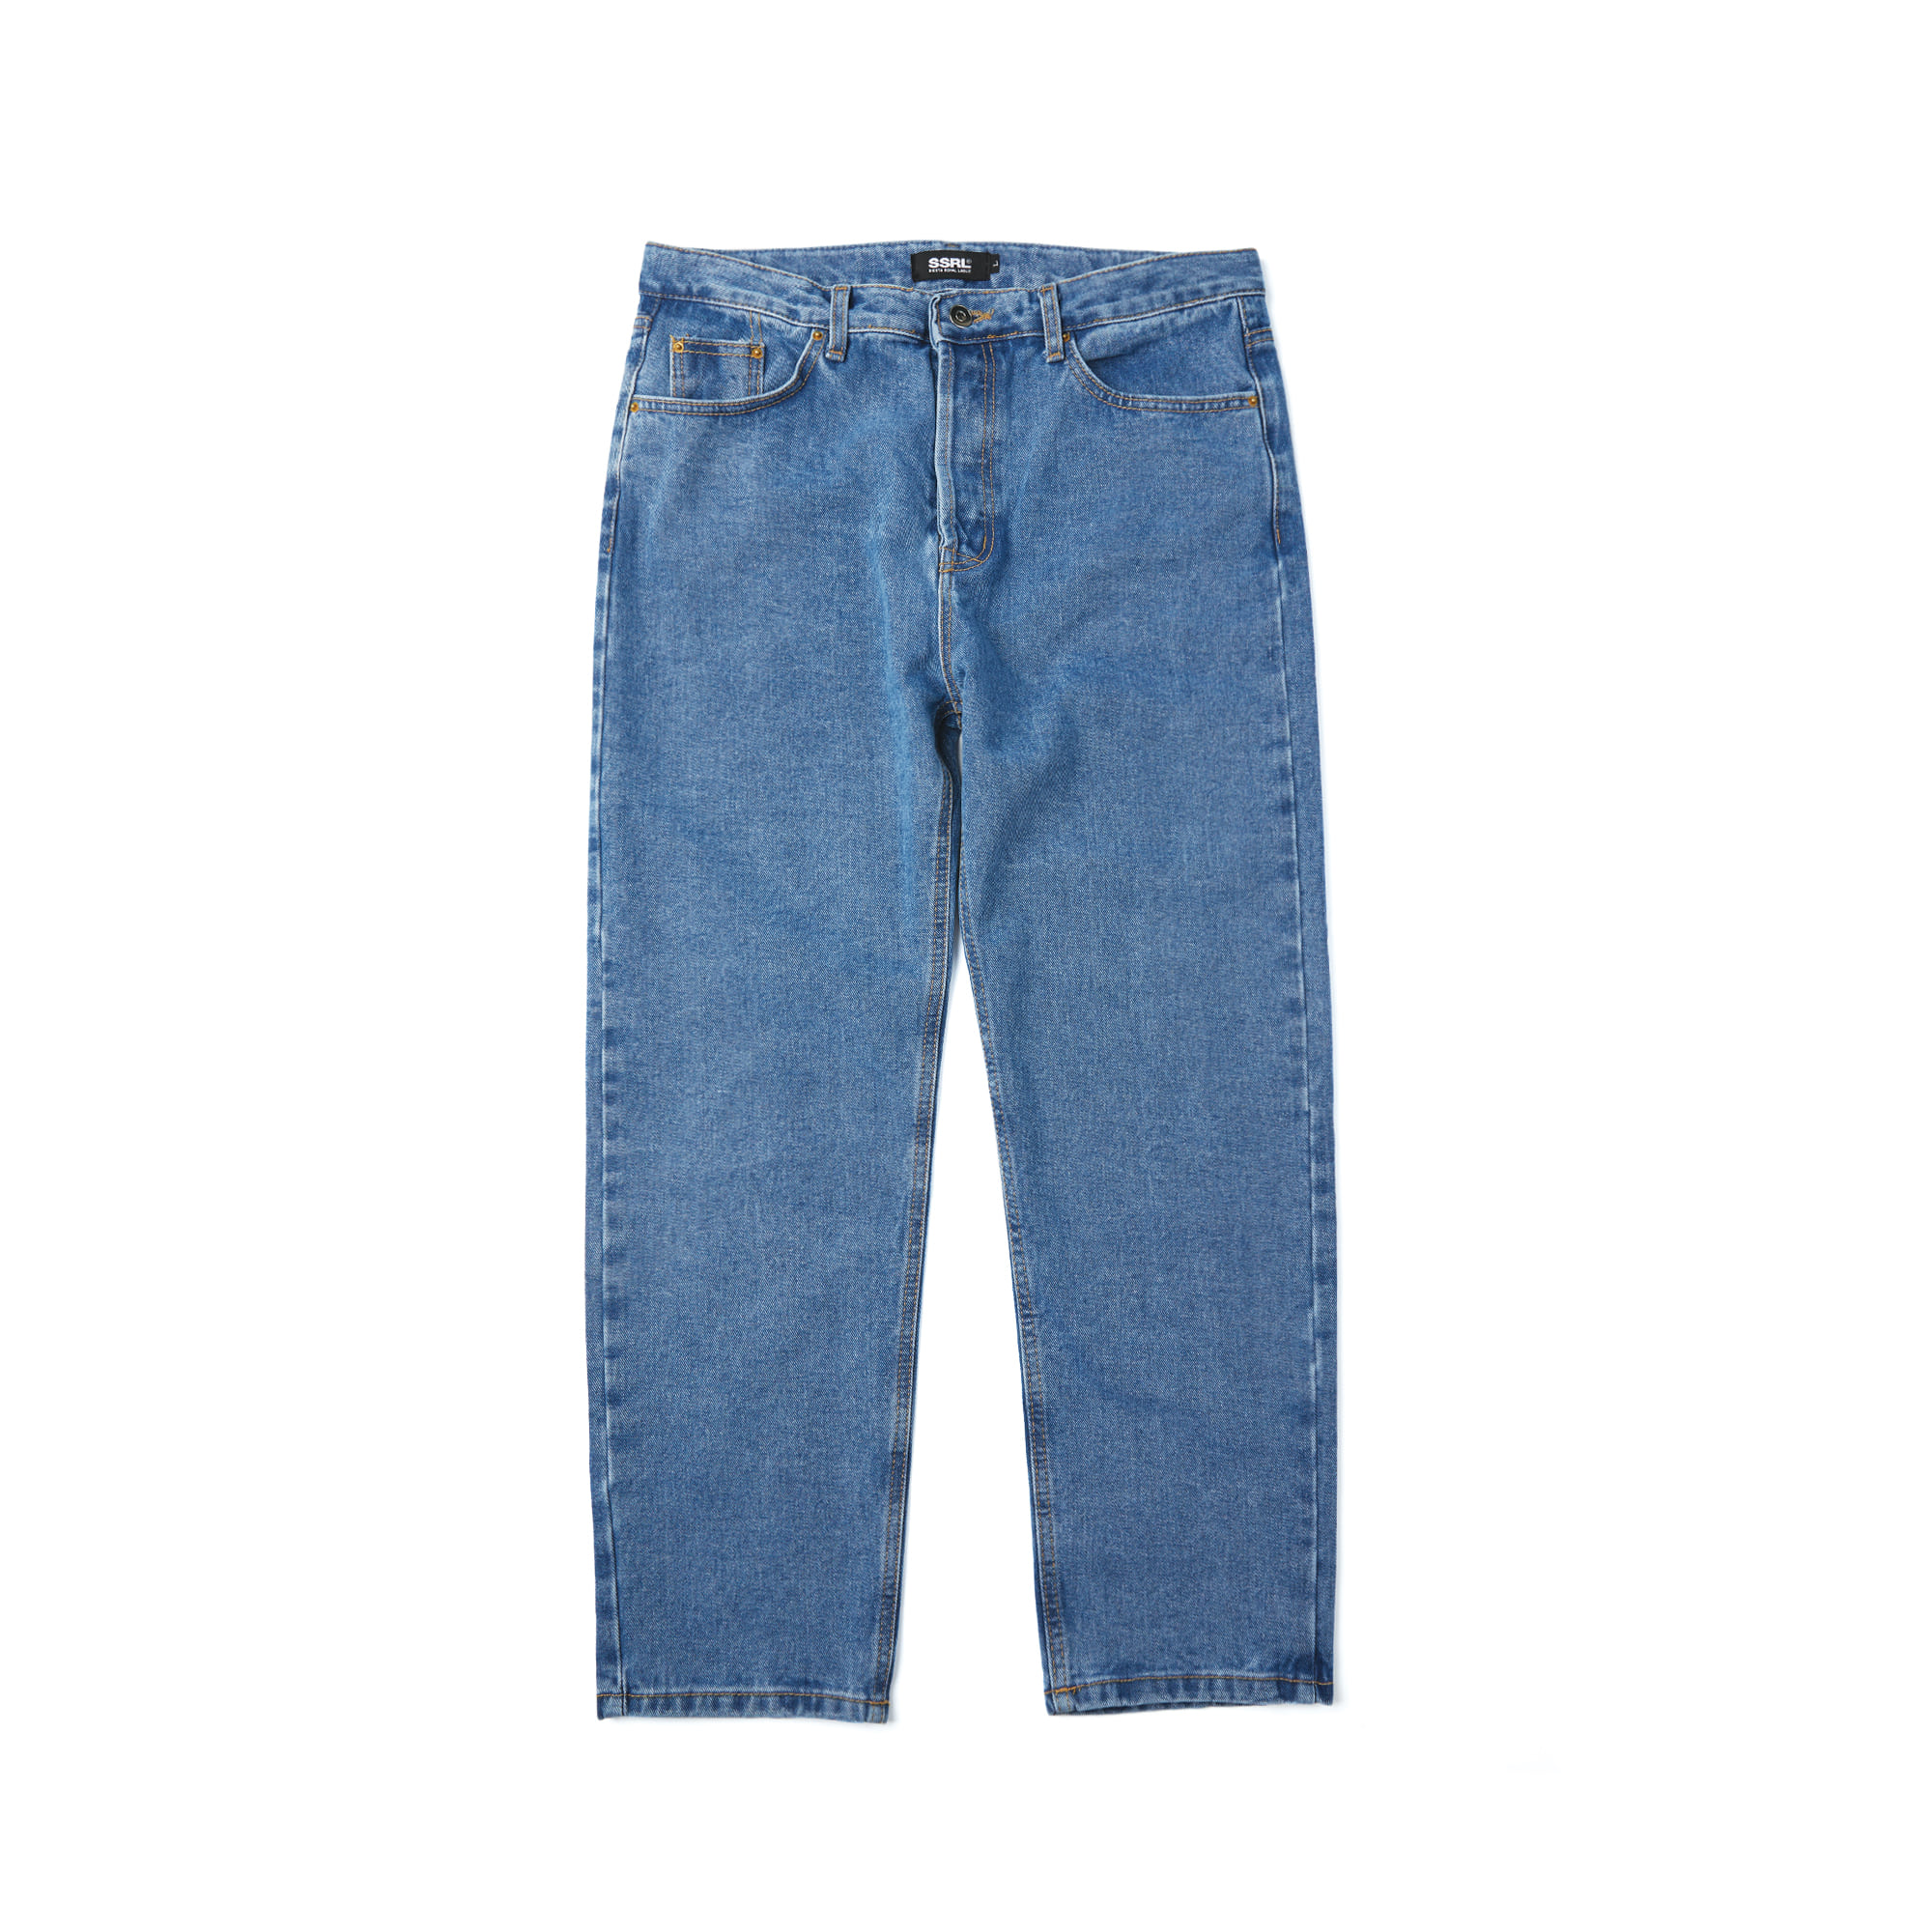 basic washed denim / indigo